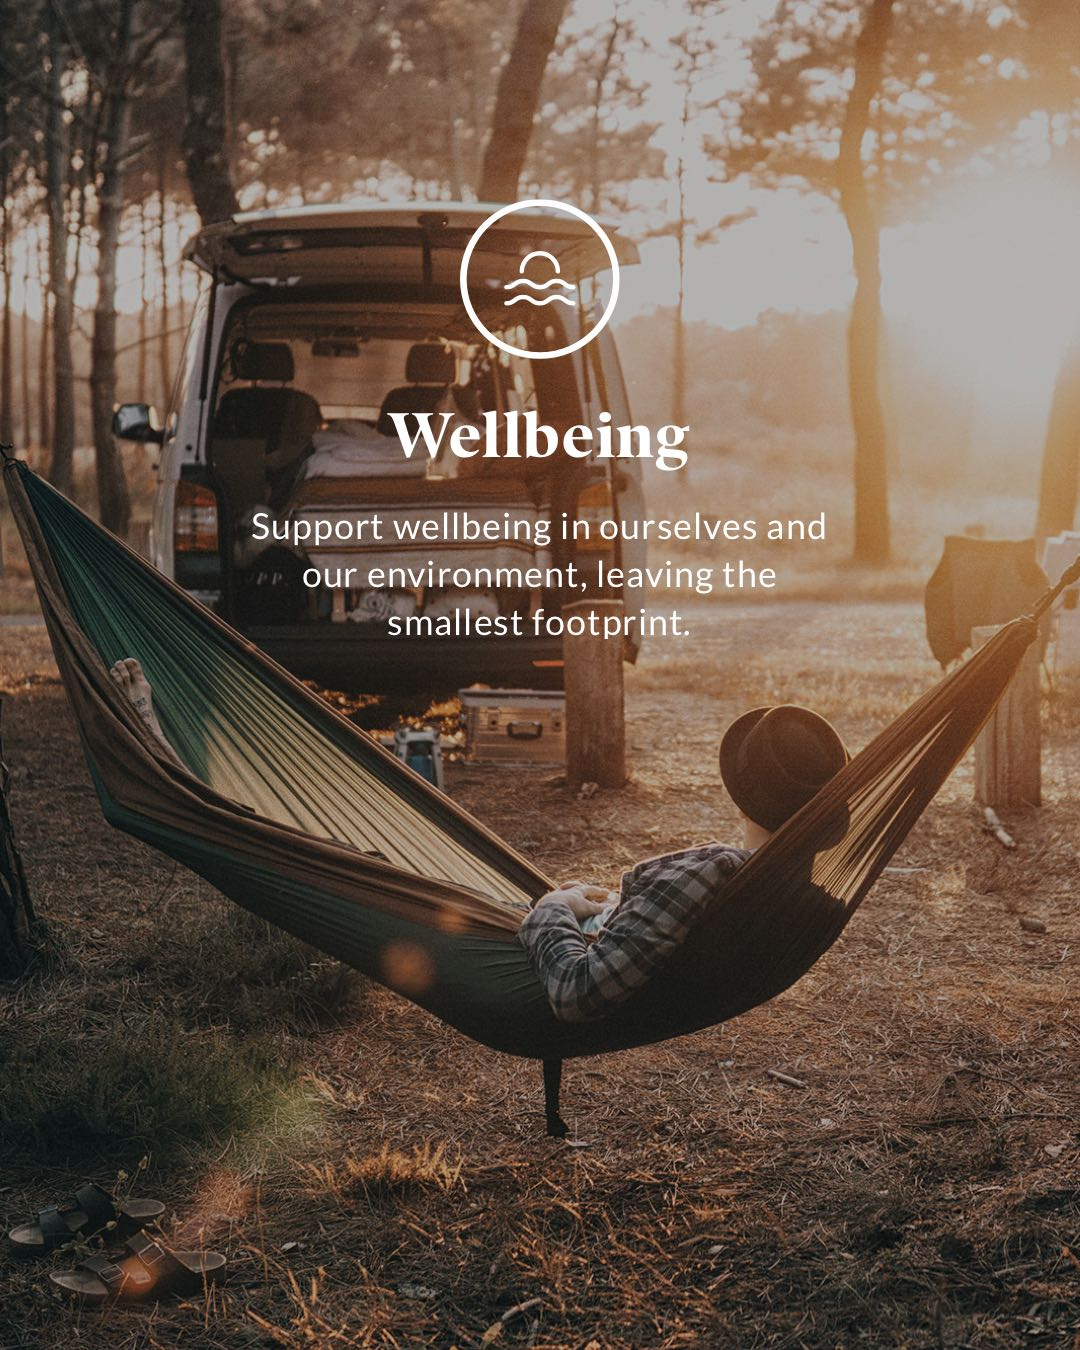 Wellbeing - Support wellbeing in ourselves and our environment, leaving the smallest footprint.